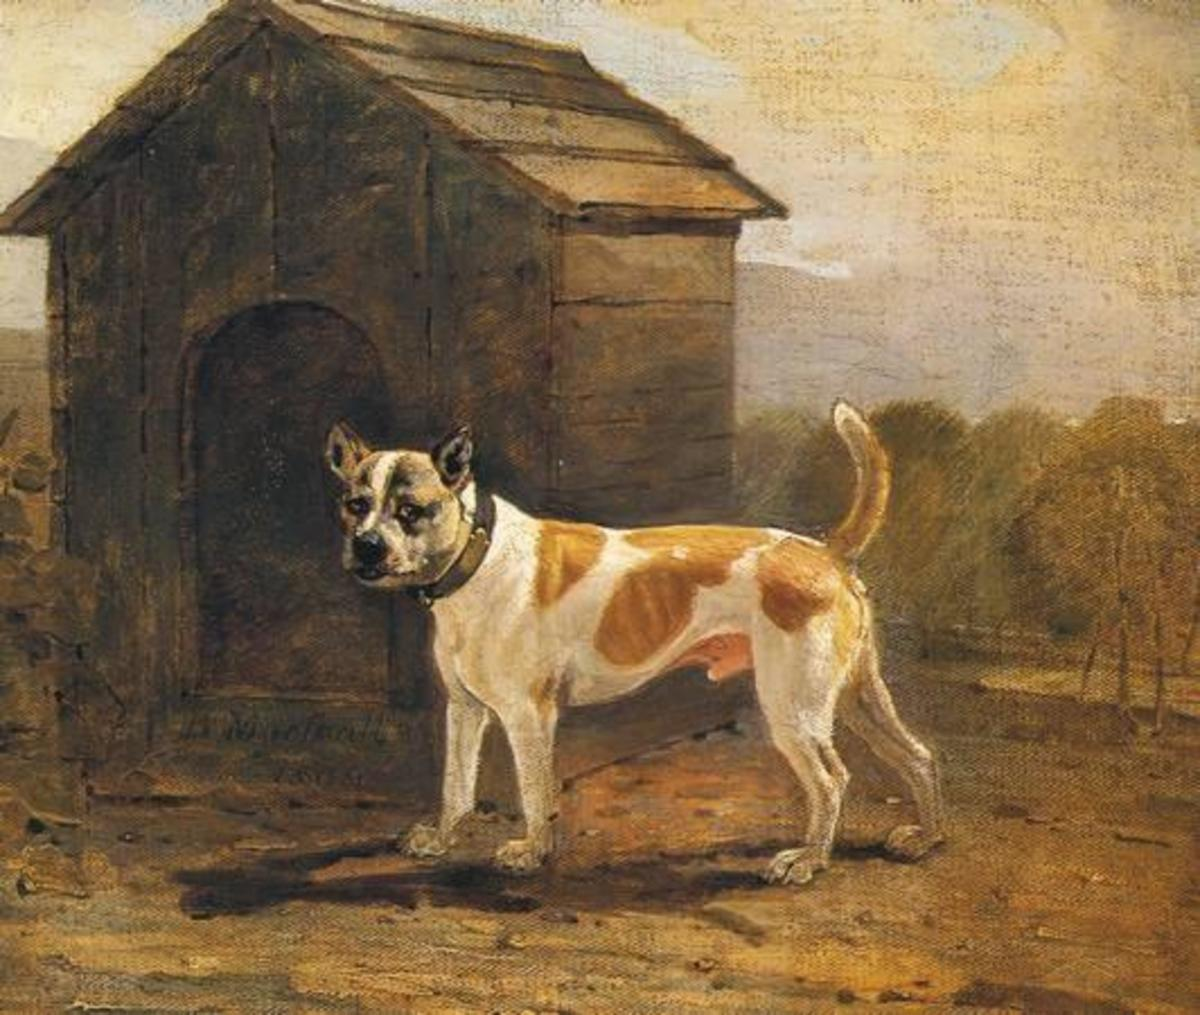 Painting from the early 1800's - a bulldog.